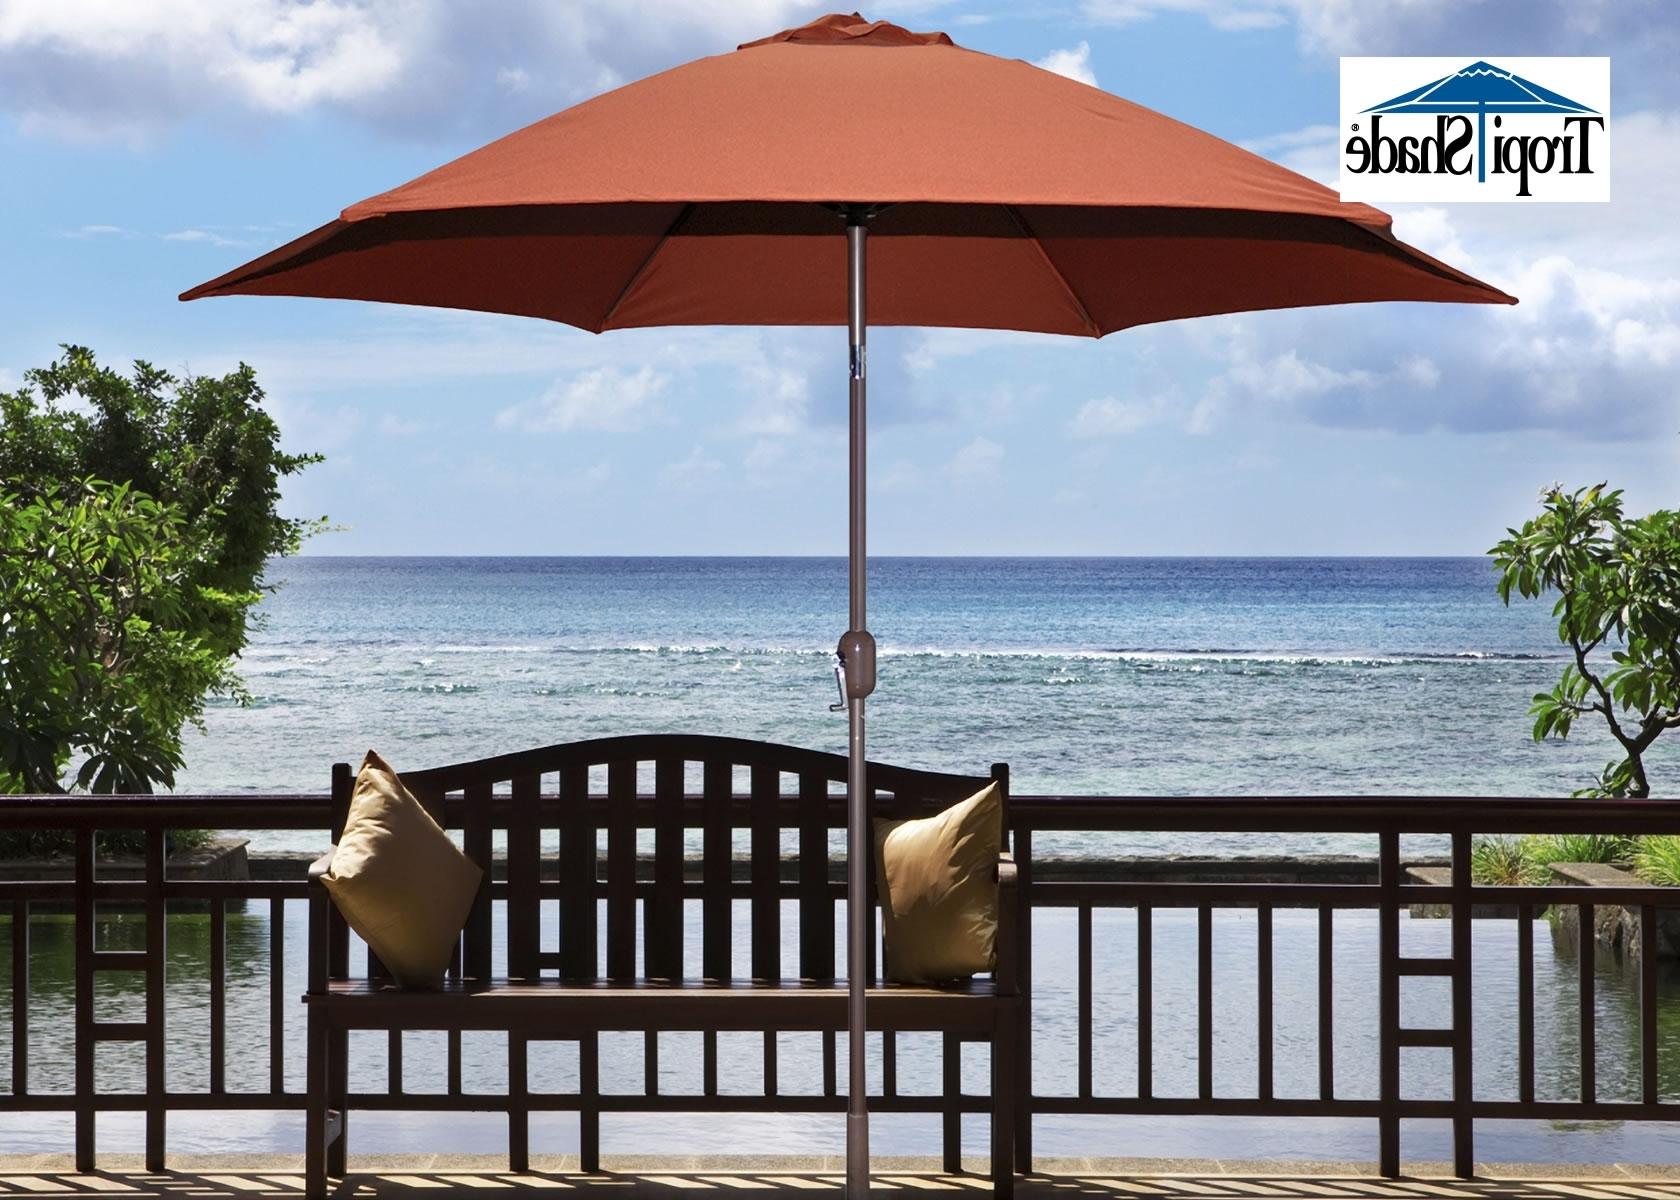 Tropishade ® Worldwide Manufacturer Of Outdoor Patio Umbrellas Throughout Famous Outdoor Patio Umbrellas (View 12 of 20)